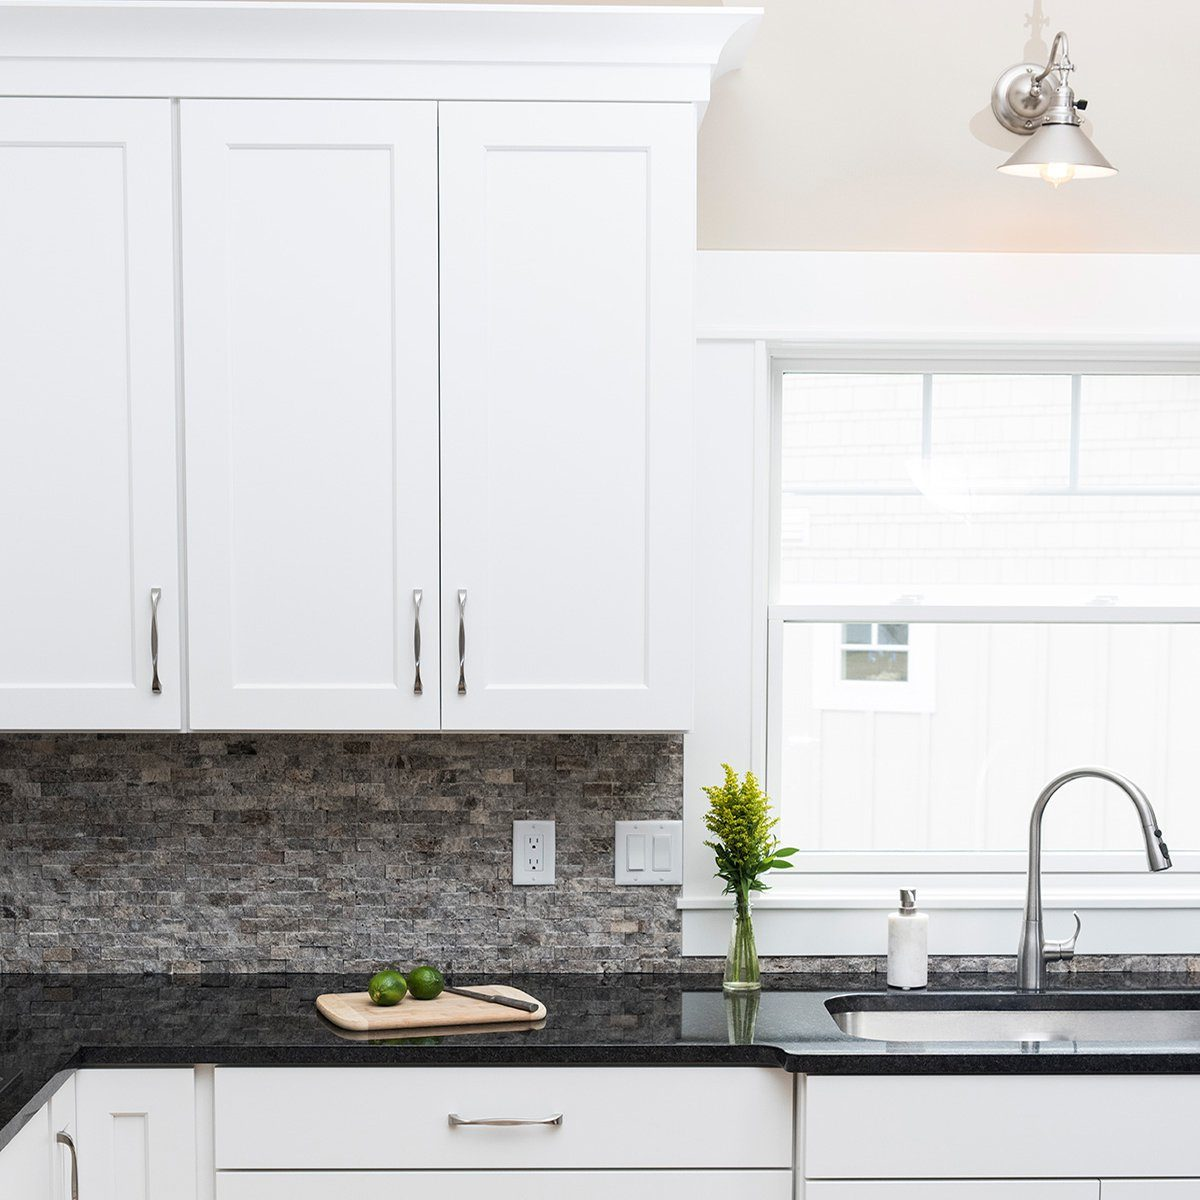 White Kitchen Cabinets With Silver Hardware Clear up the confusion when choosing cabihardware